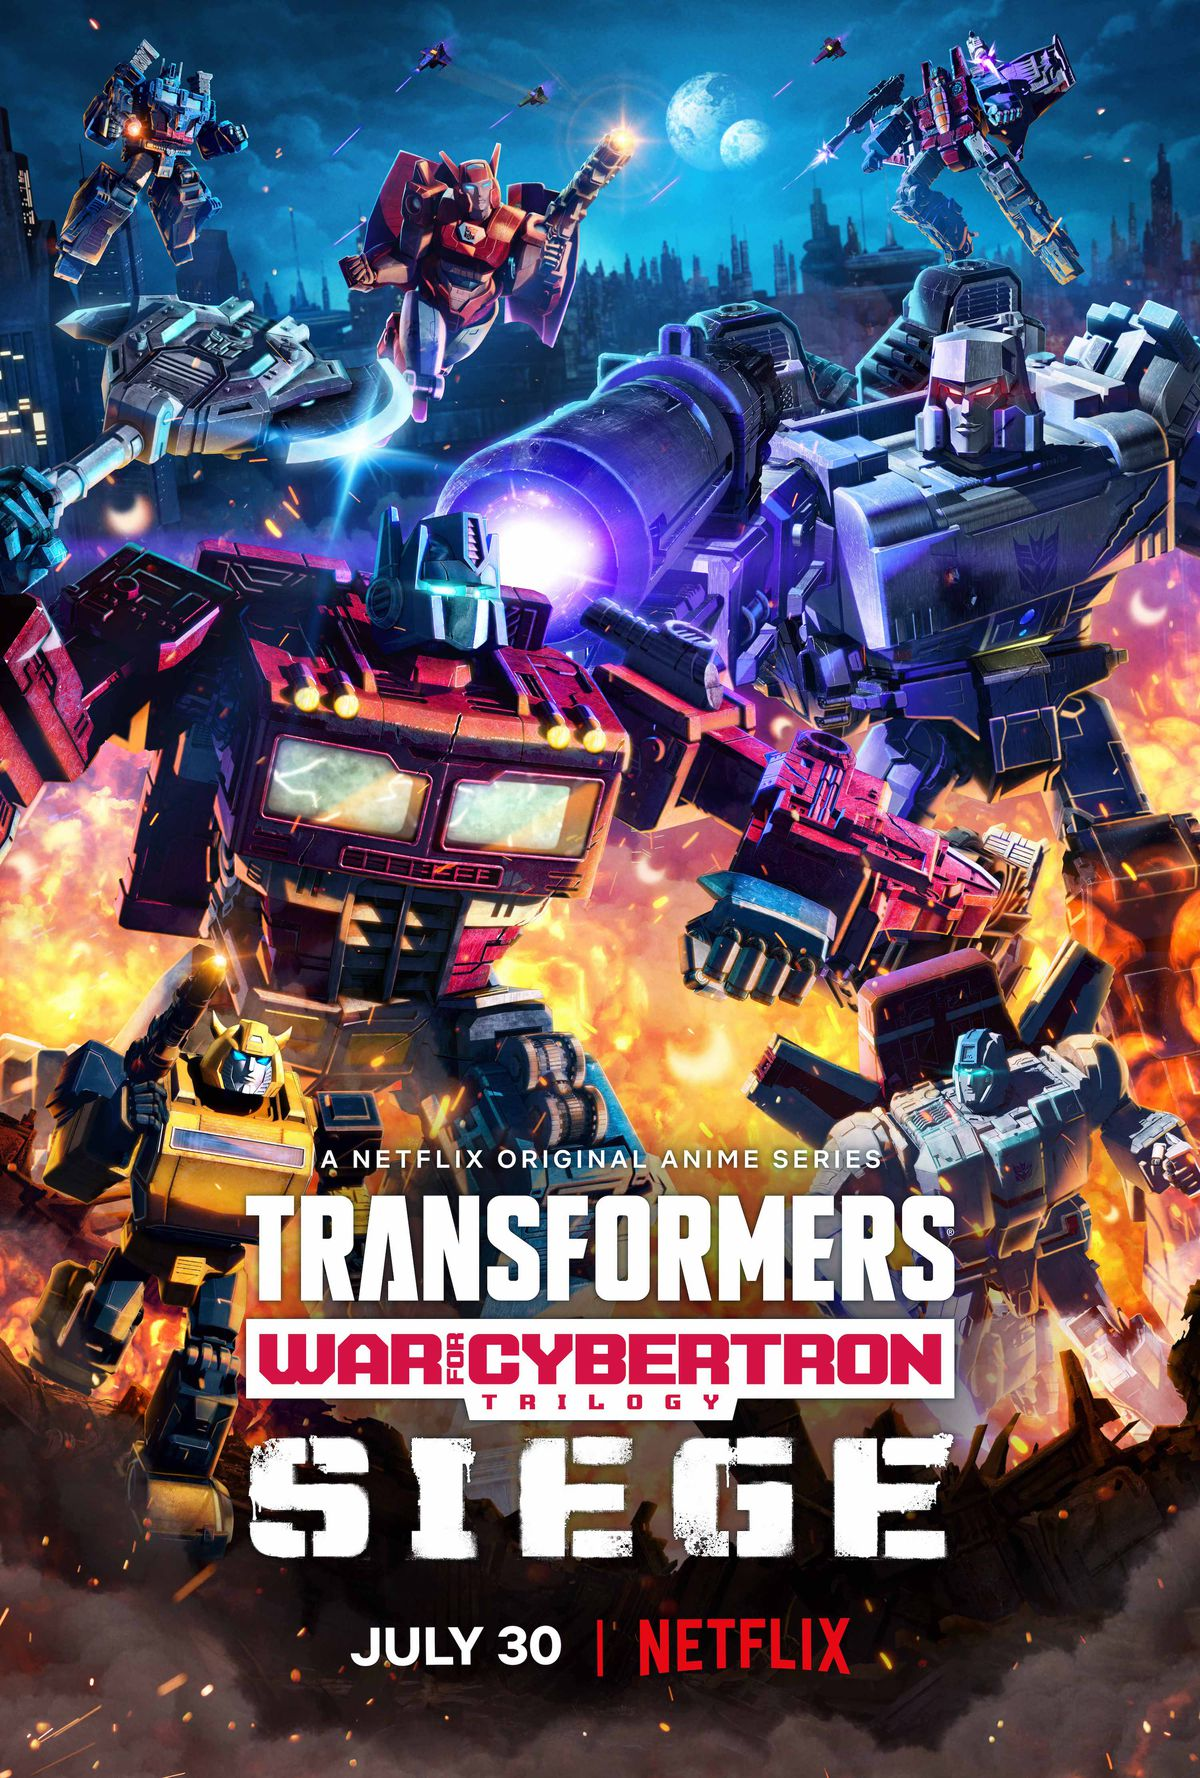 The poster for transformers war for cybertron, featuring Optimus Prime and Megatron fighting